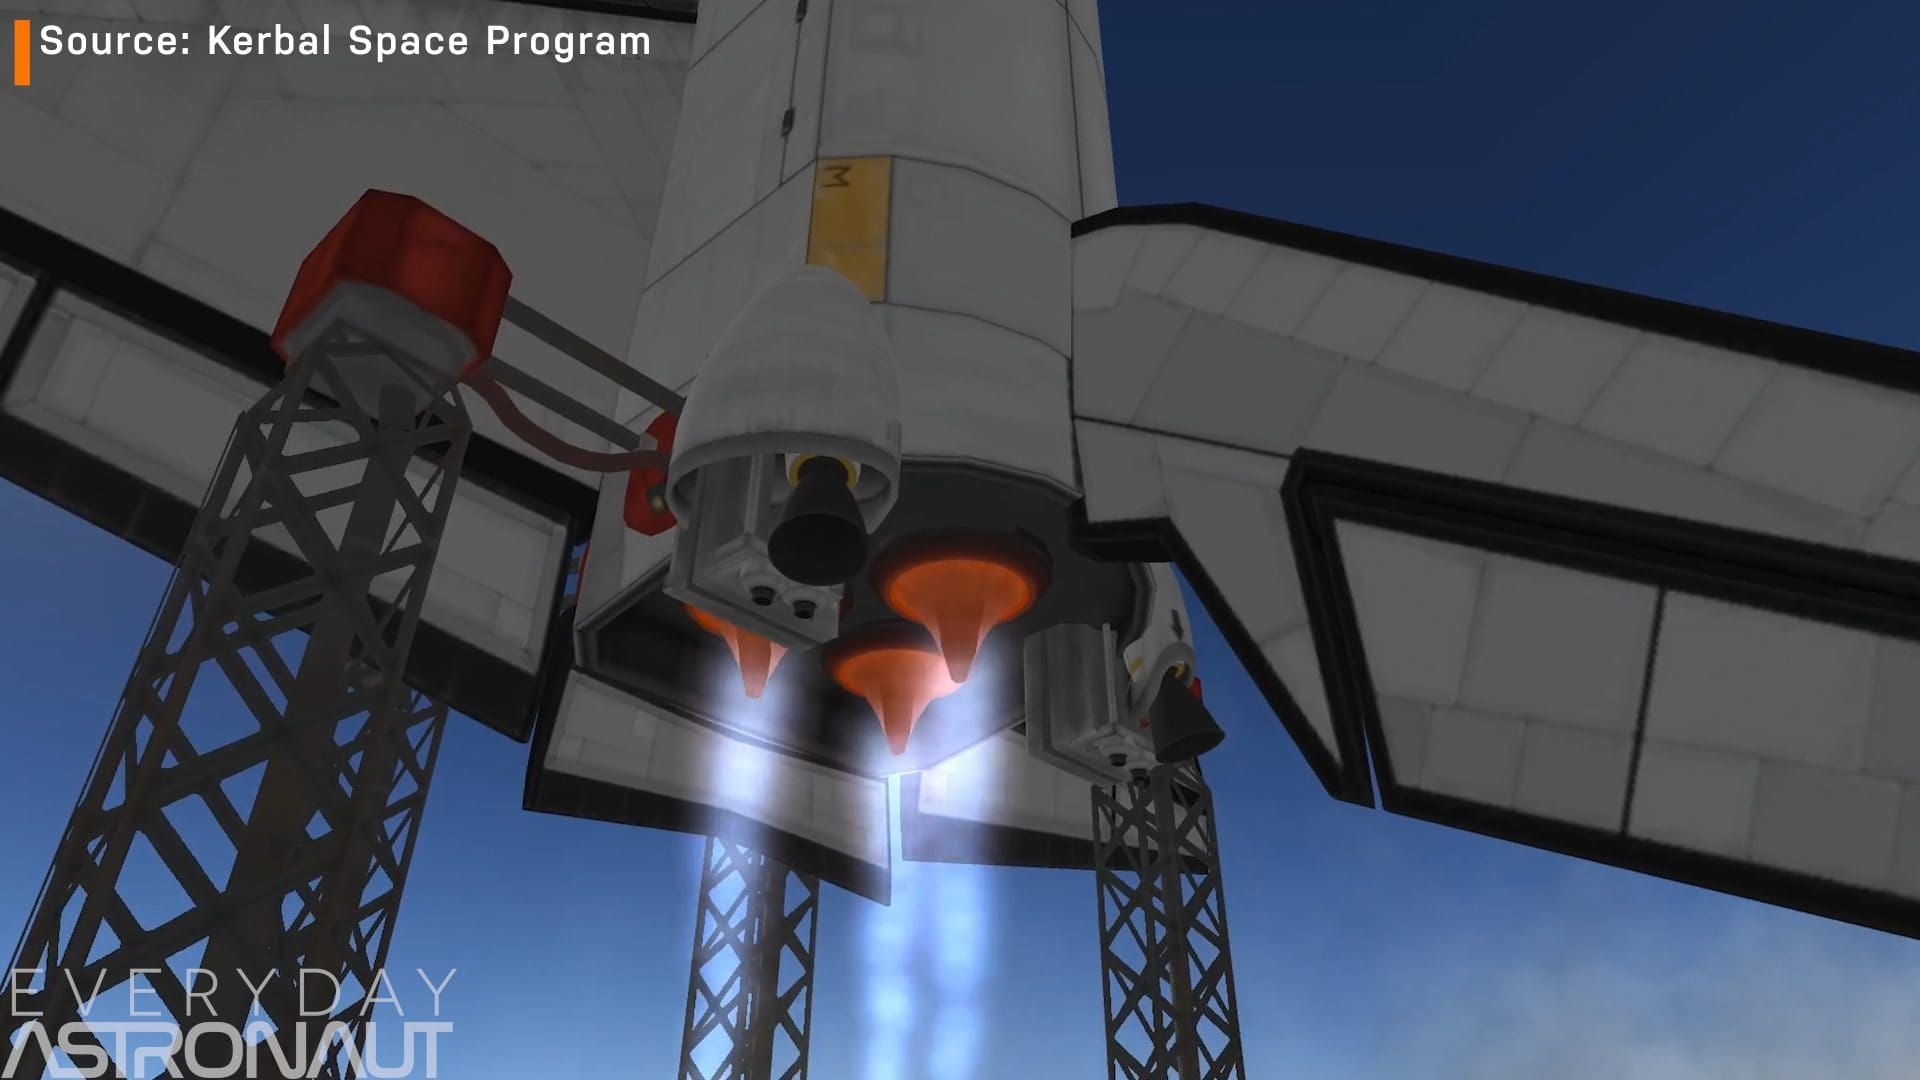 Spaceshuttle with aerospikes